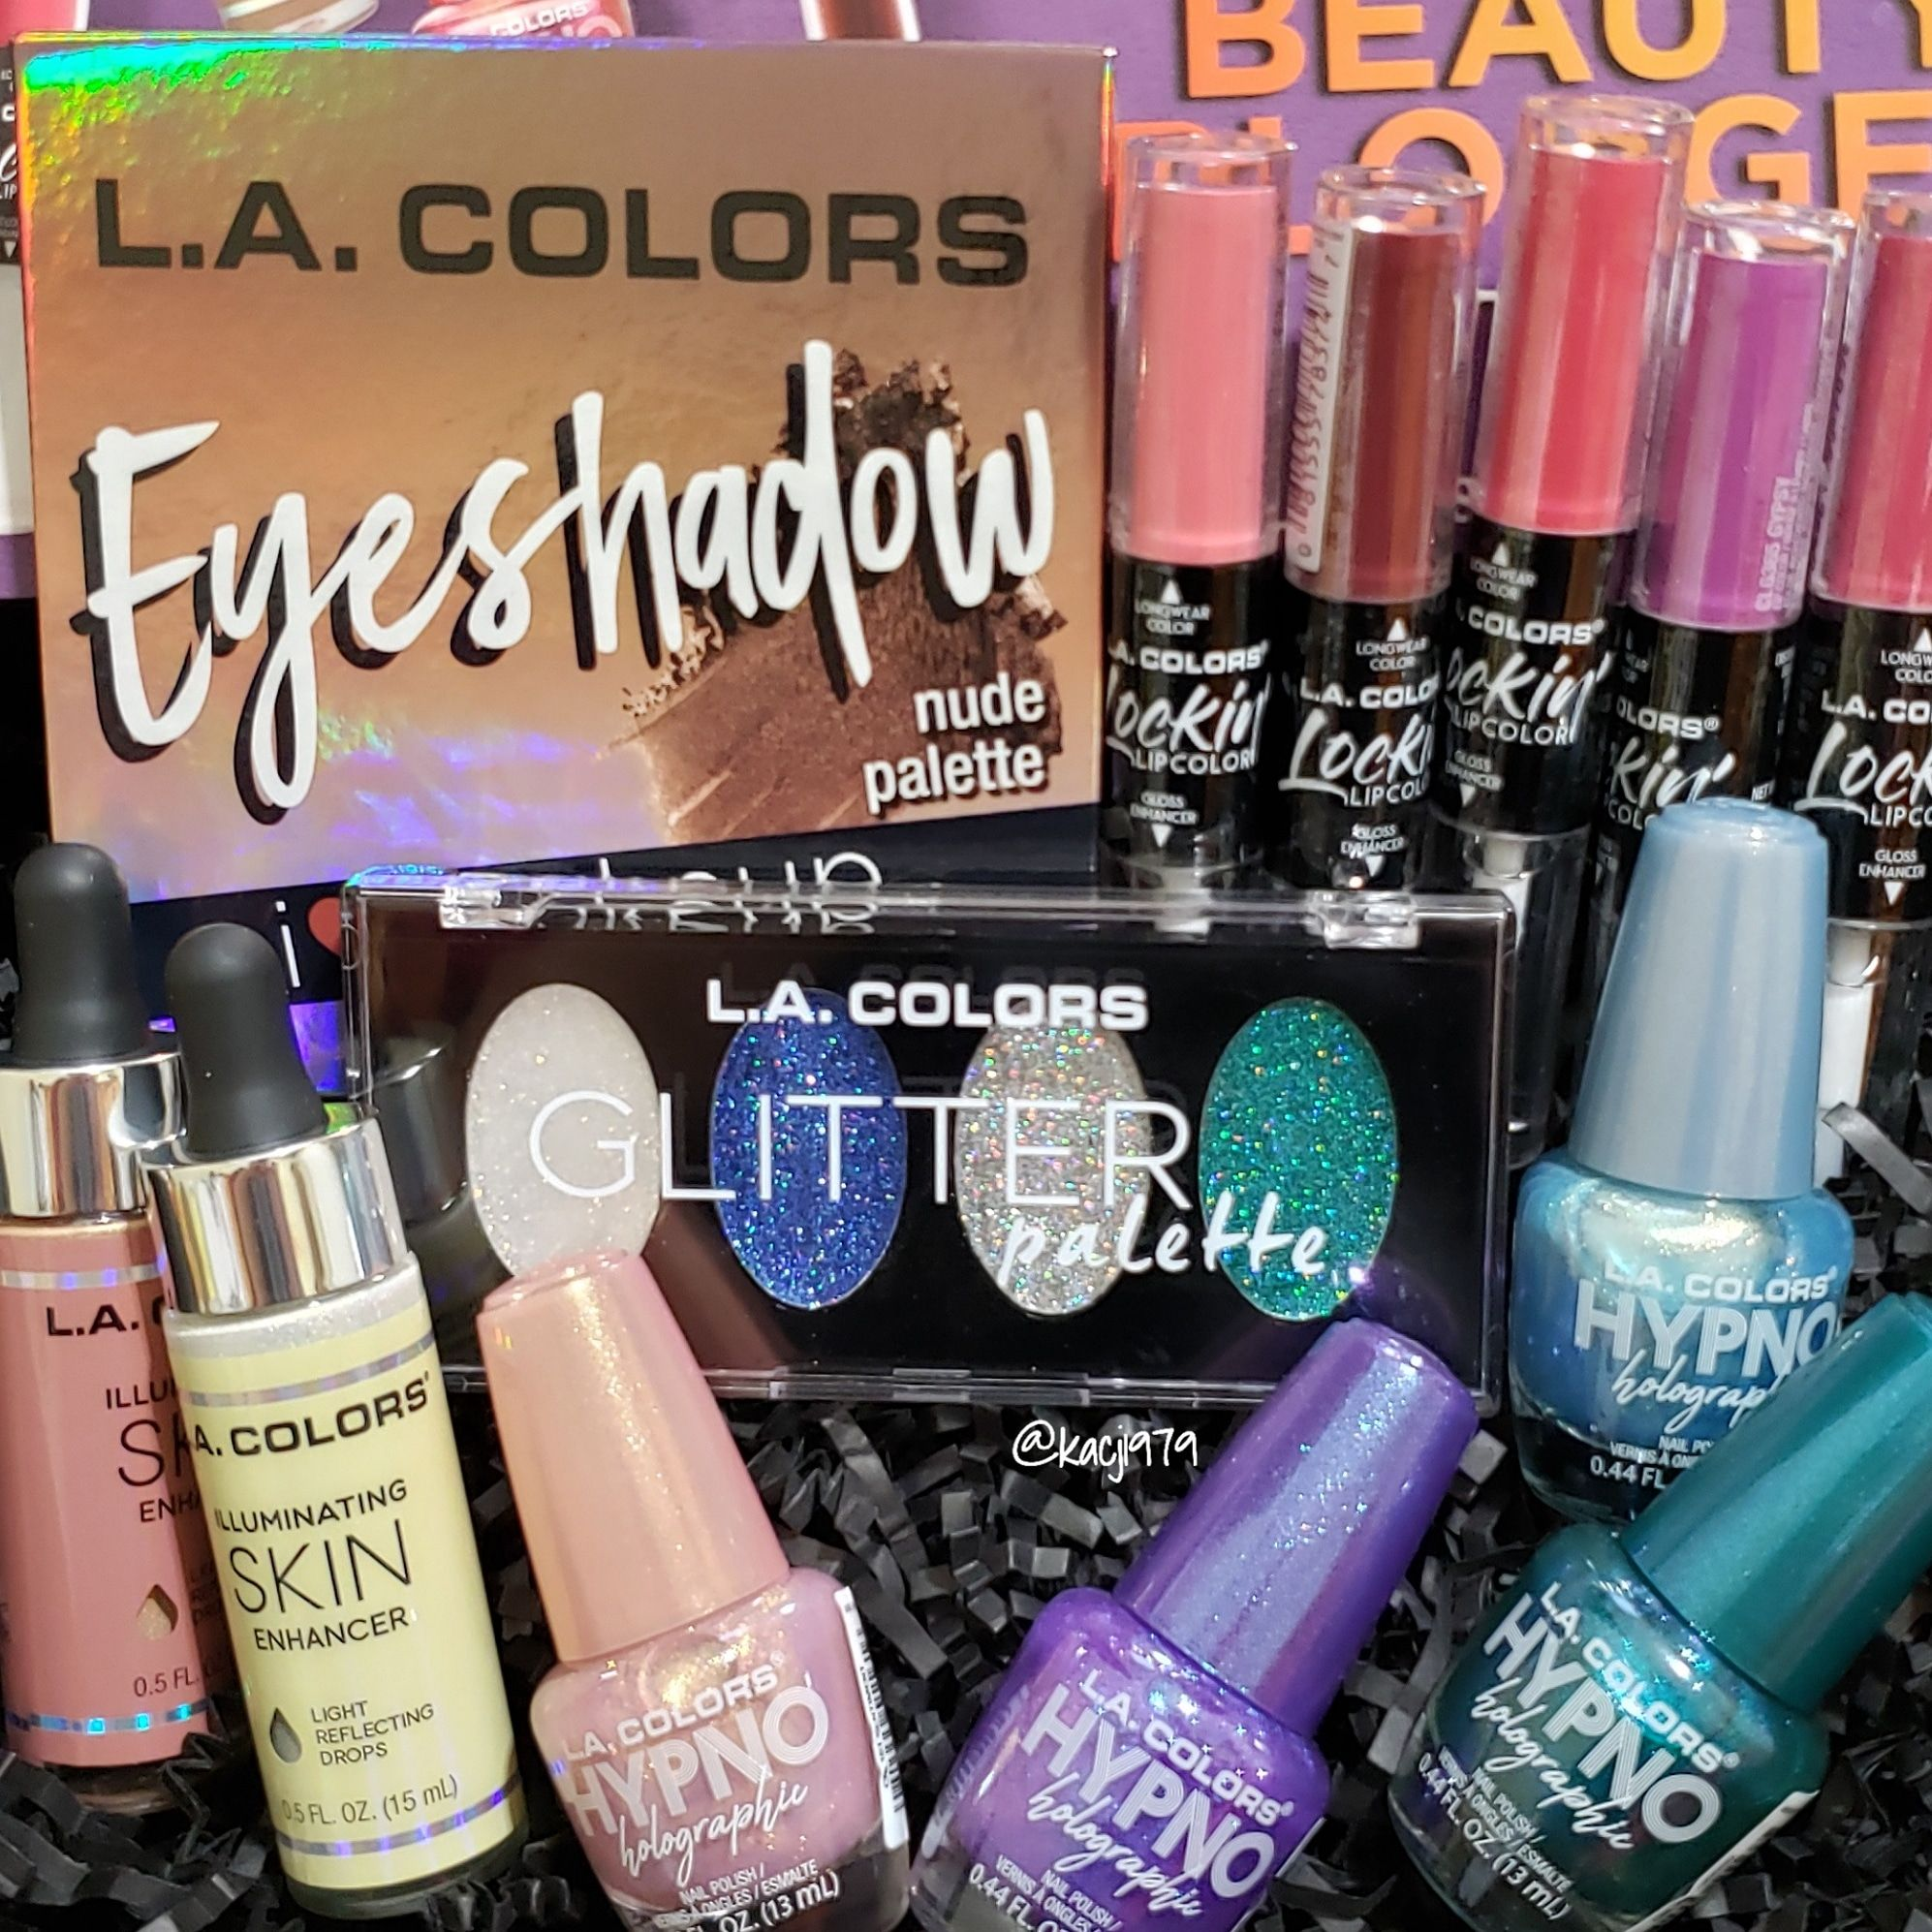 New La Colors cosmetics beauty blogger favorites available